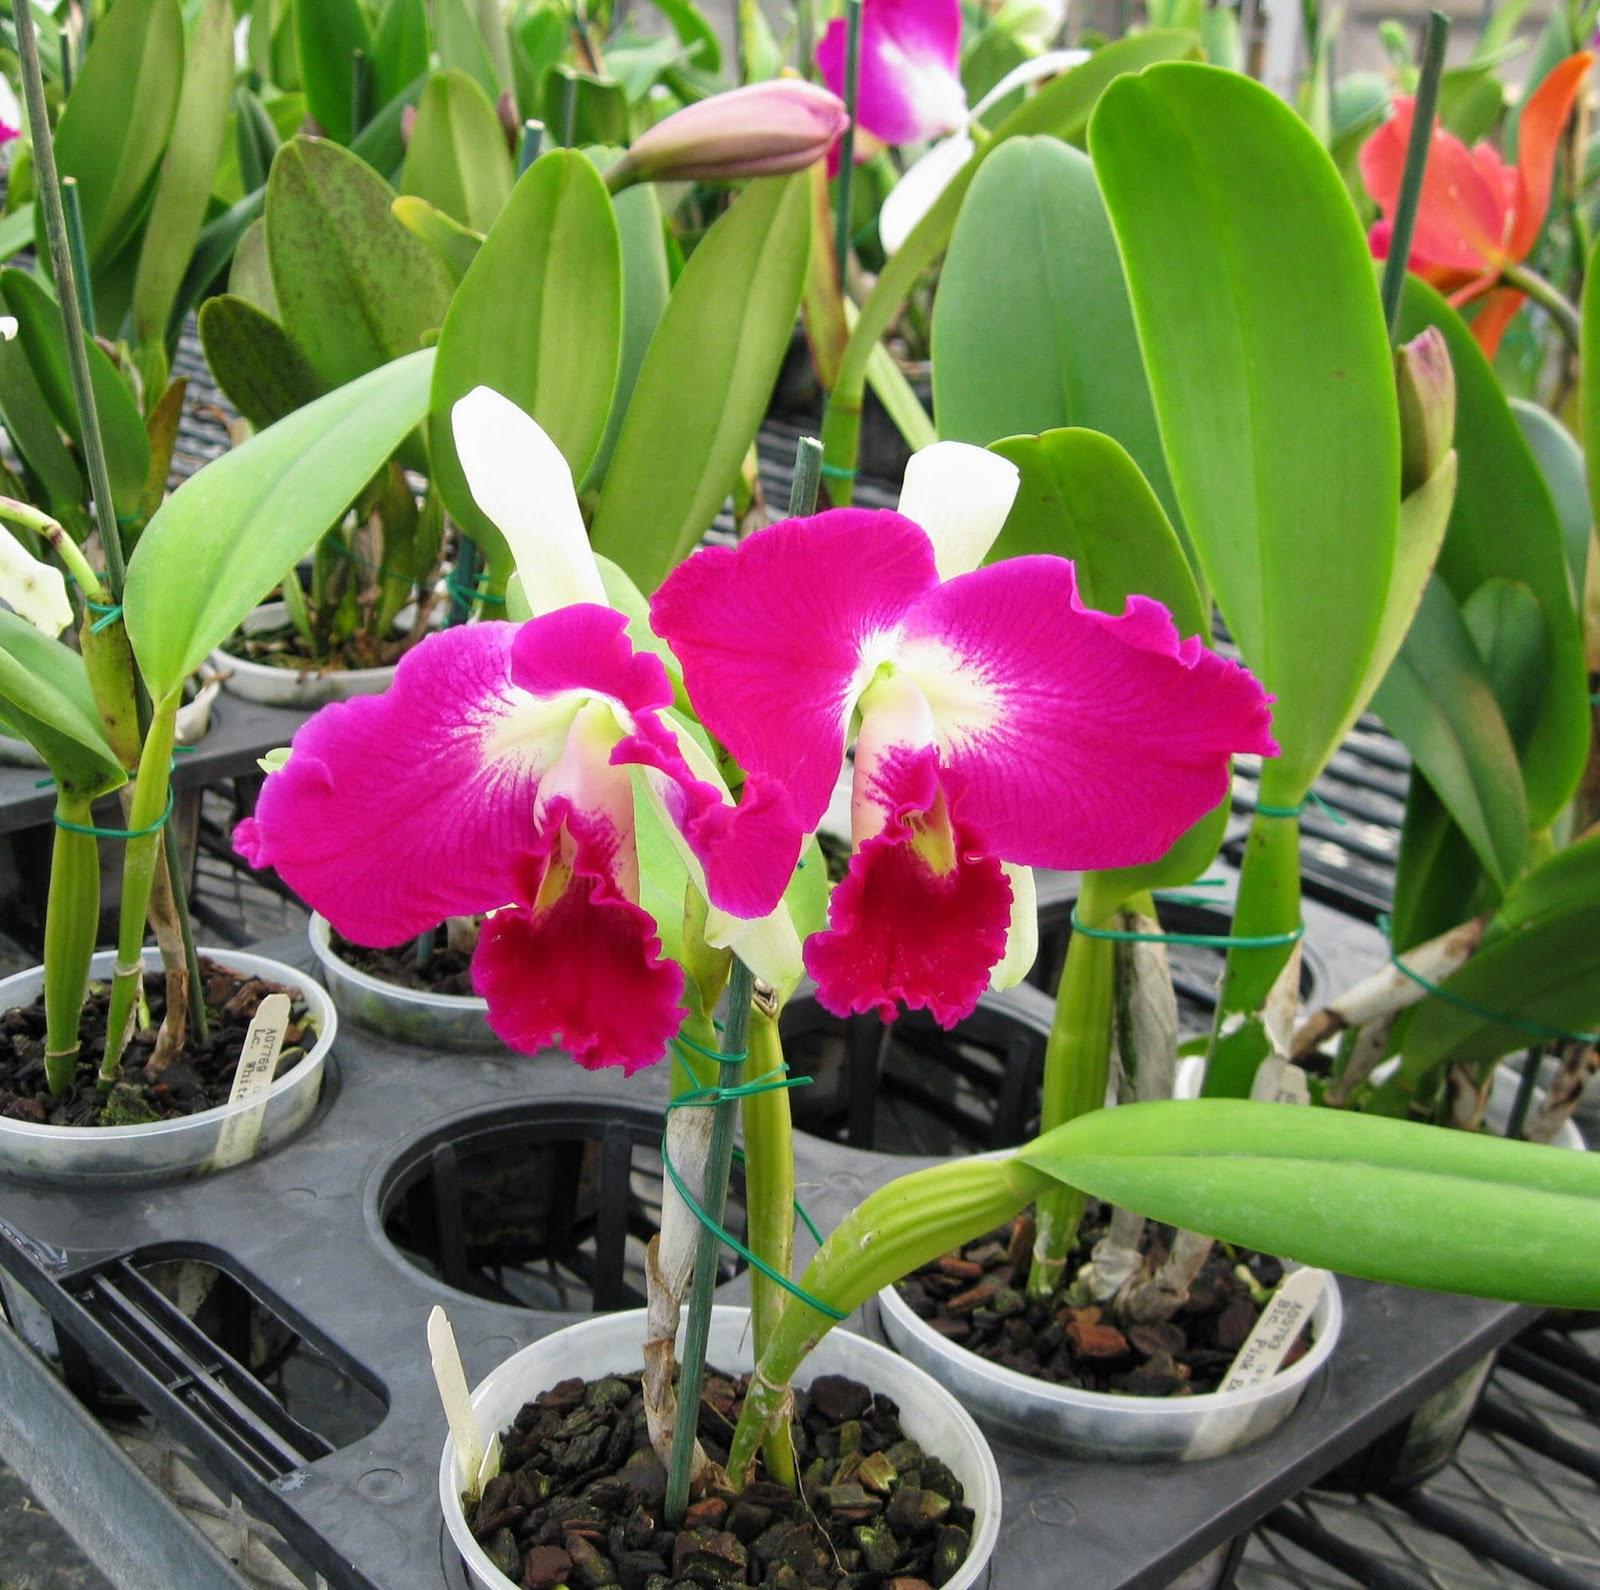 Cattleya orchid flowers - orchid name unknown